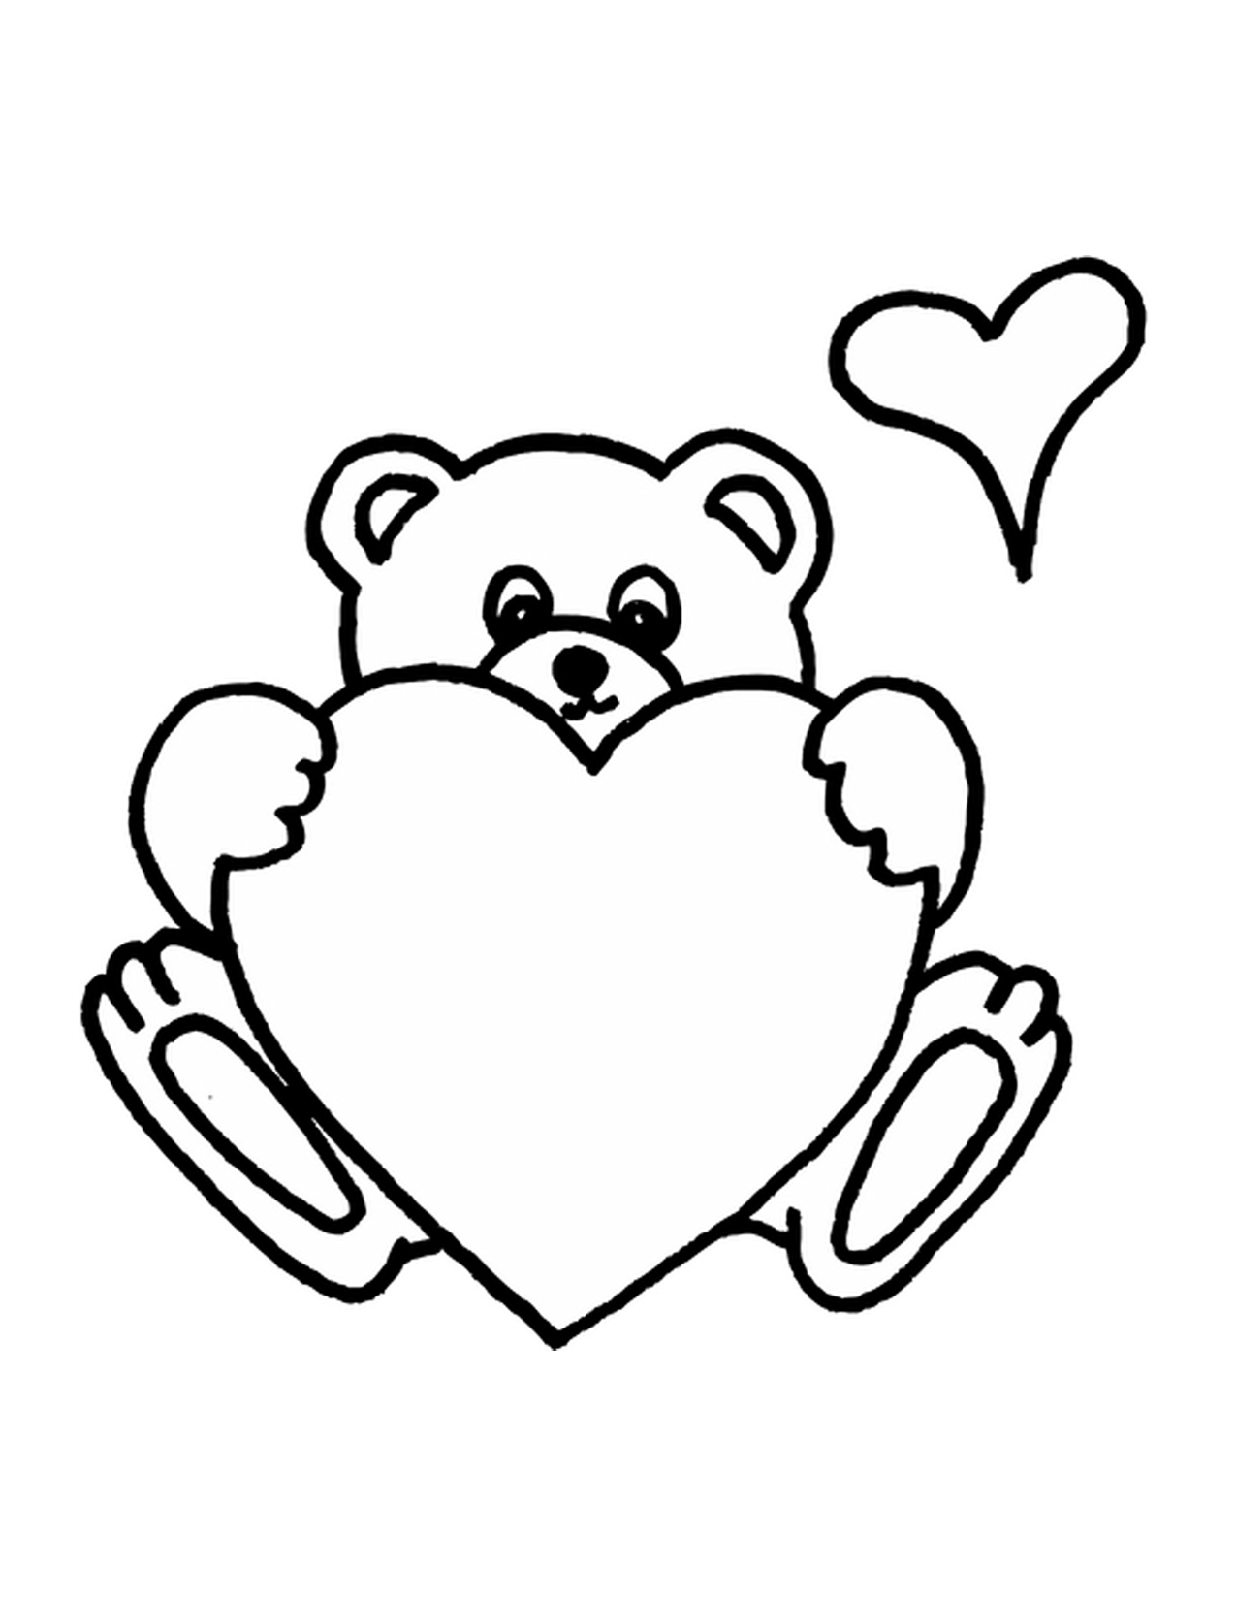 Teddy Bear Coloring Pages to Print | Heart coloring pages ...